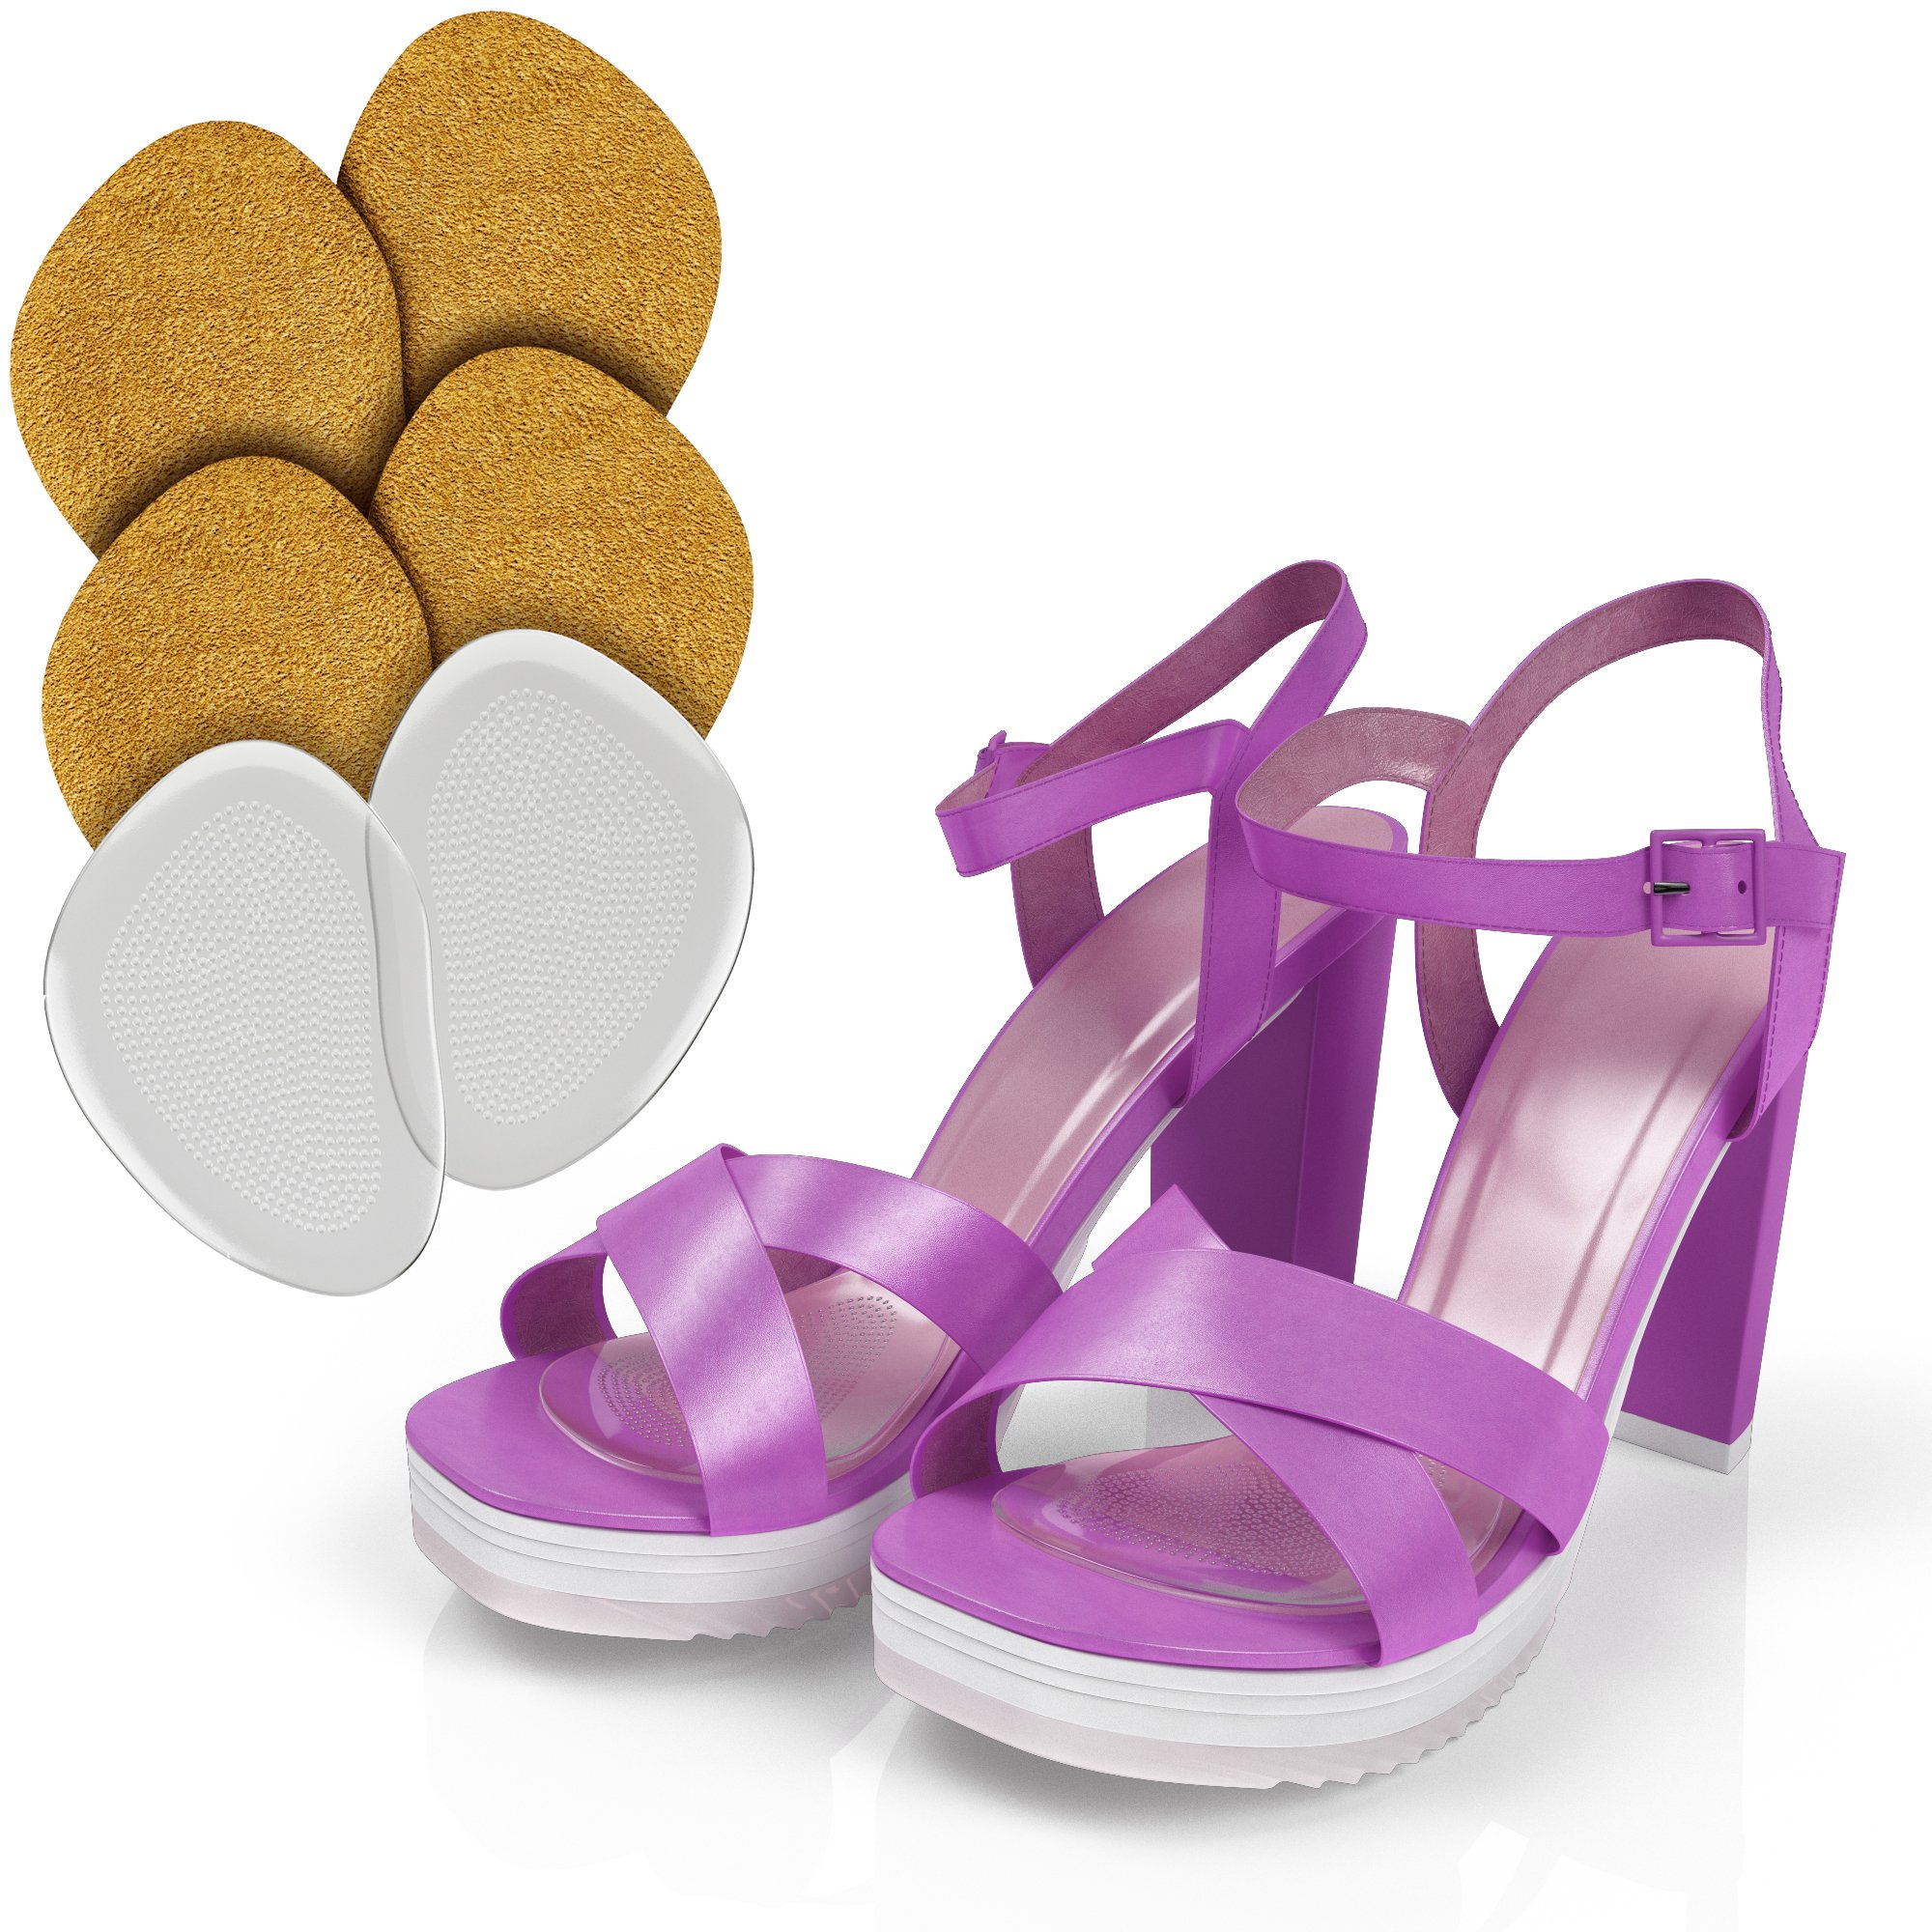 Ball of Foot - Ball of Foot Cushions - (3 Pairs) - Ball of Foot Pads - Ball of Foot Cushions for Heels - Foot Pain Relief